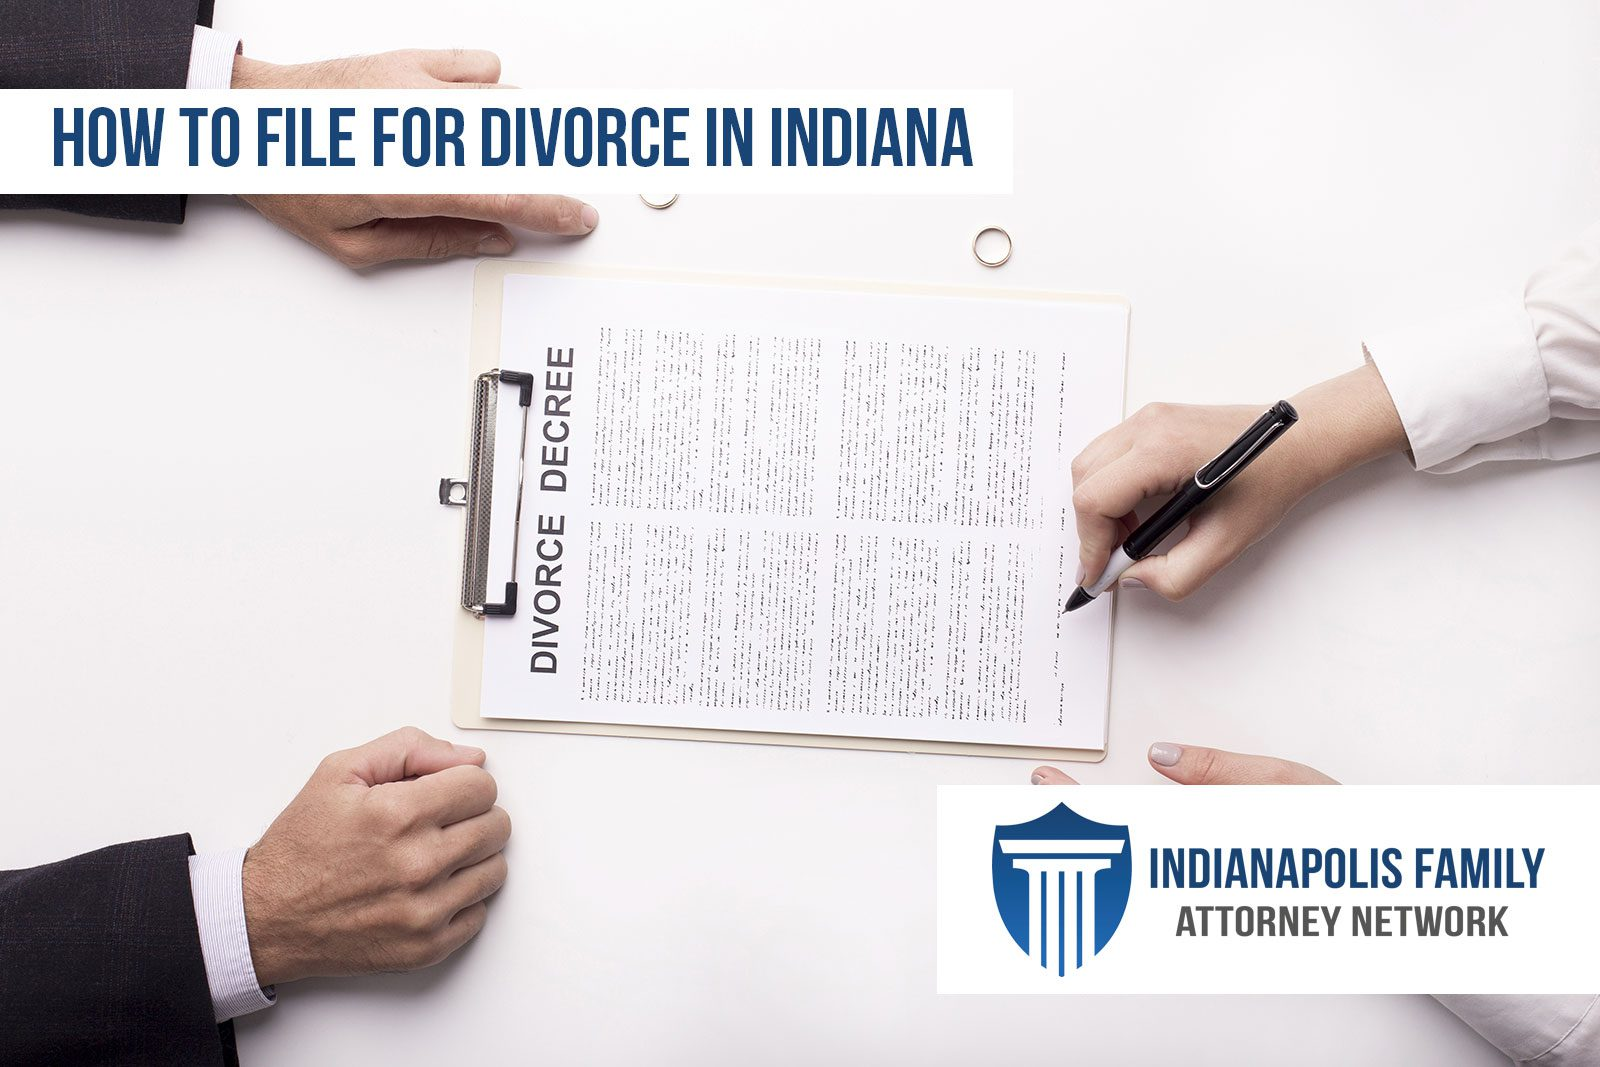 How to File for Divorce in Indiana